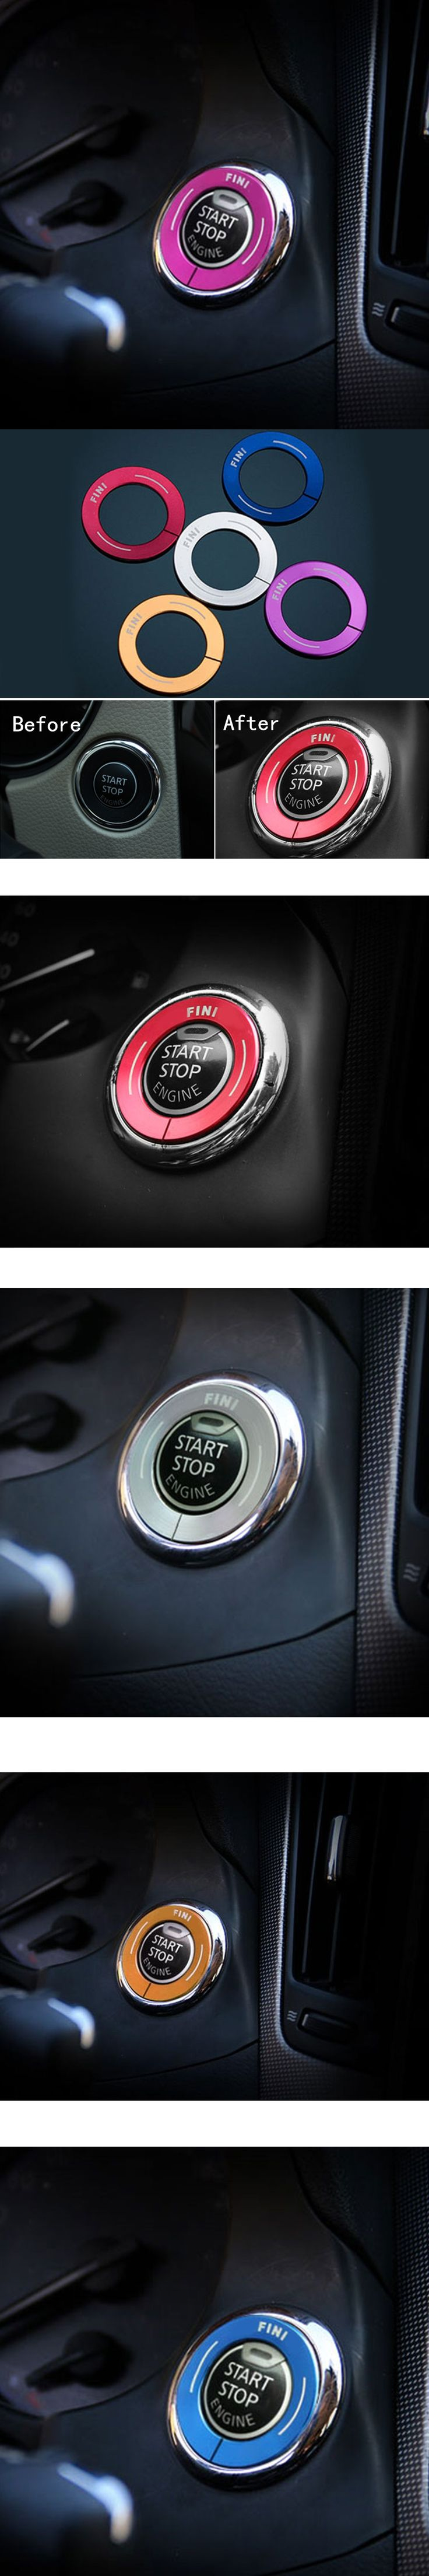 Stainless Steel Ignition Key Cover Sticker For Infiniti Q50 Q50L QX50 QX60 JX QX70 Q70L Button Ignition Switch Decorative Circle